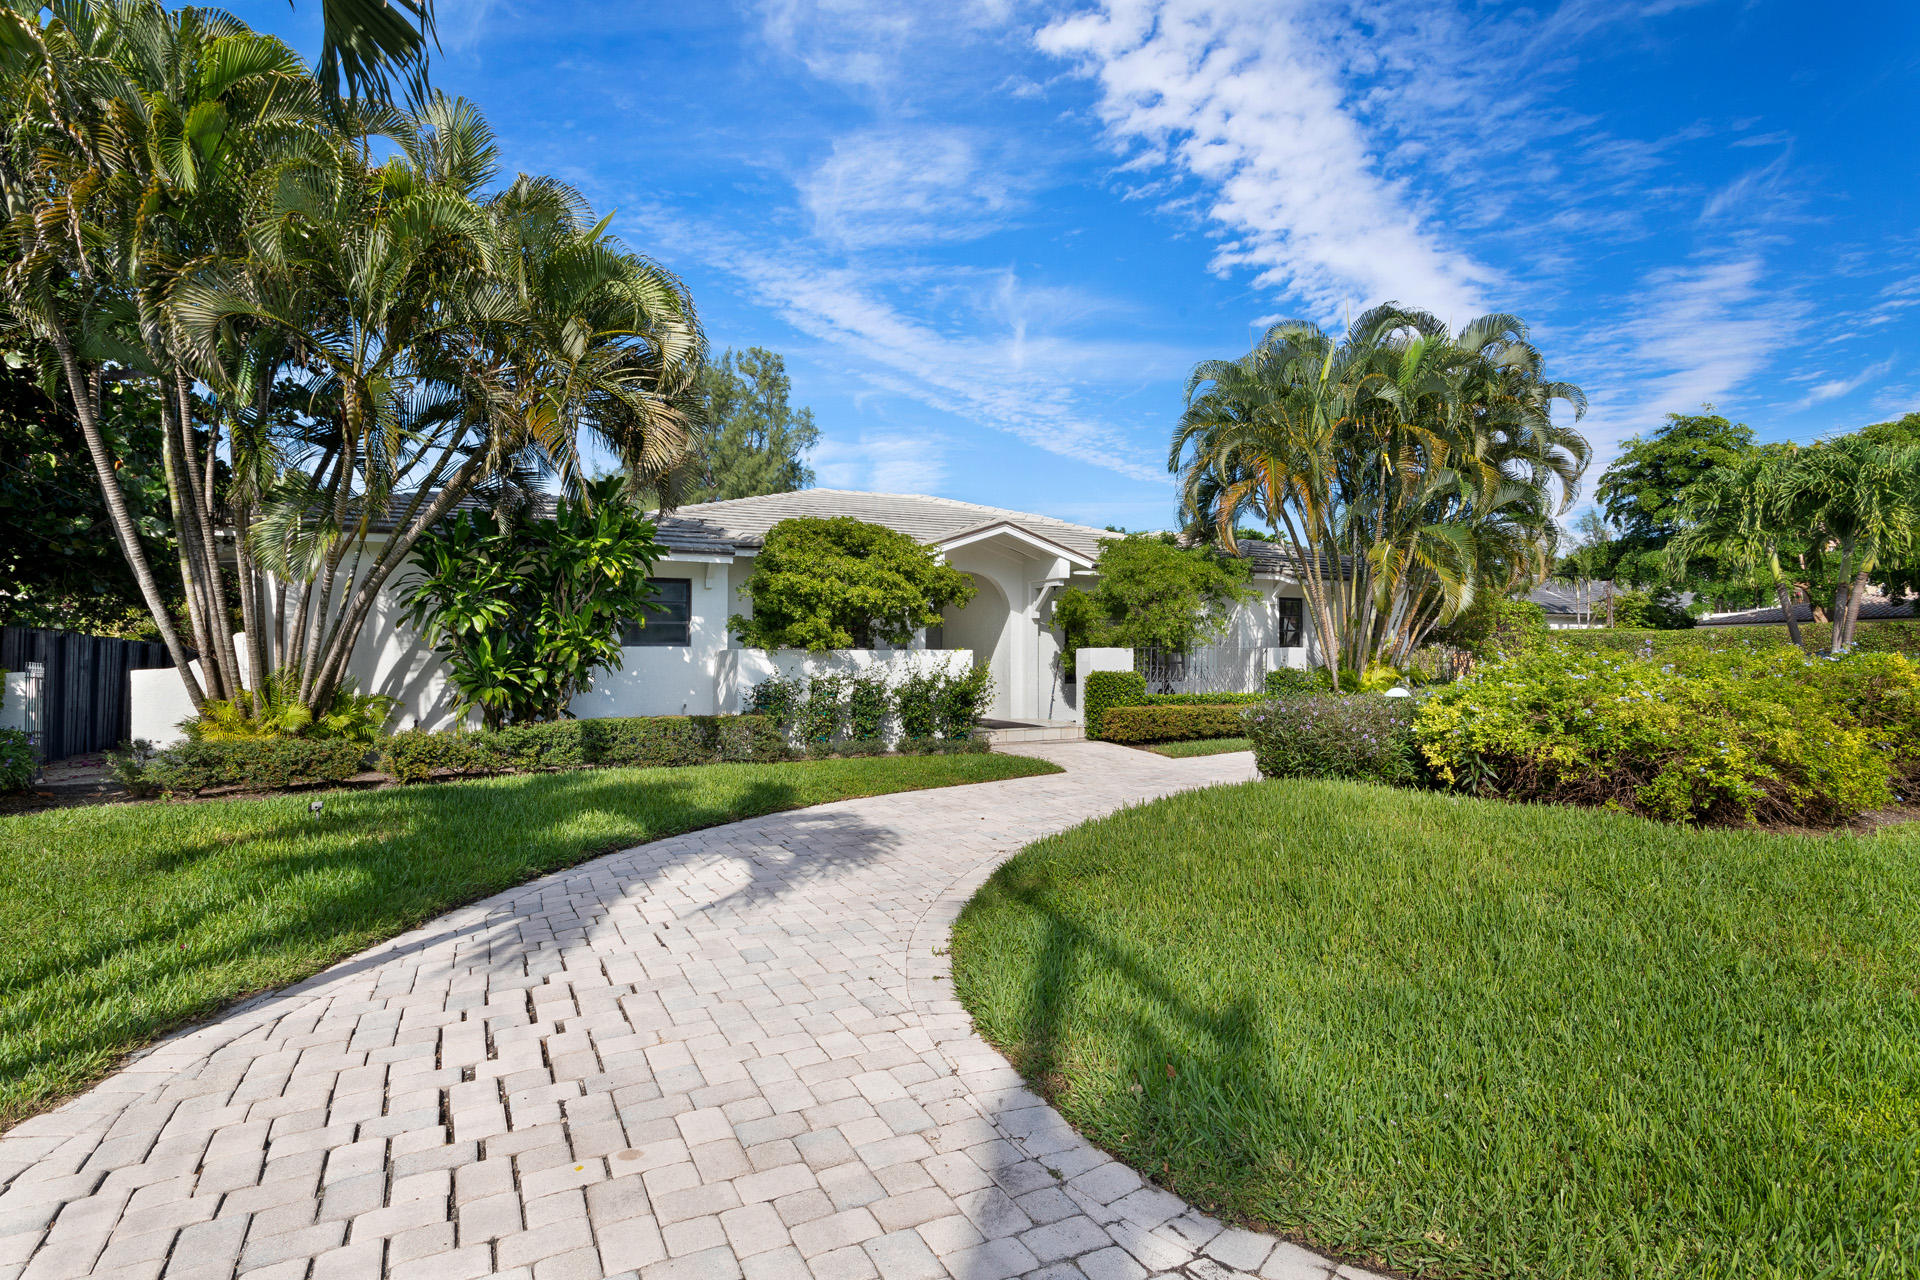 1153 Harbor Drive, Delray Beach, Florida 33483, 5 Bedrooms Bedrooms, ,5 BathroomsBathrooms,Single Family Detached,For Sale,Harbor,RX-10579547